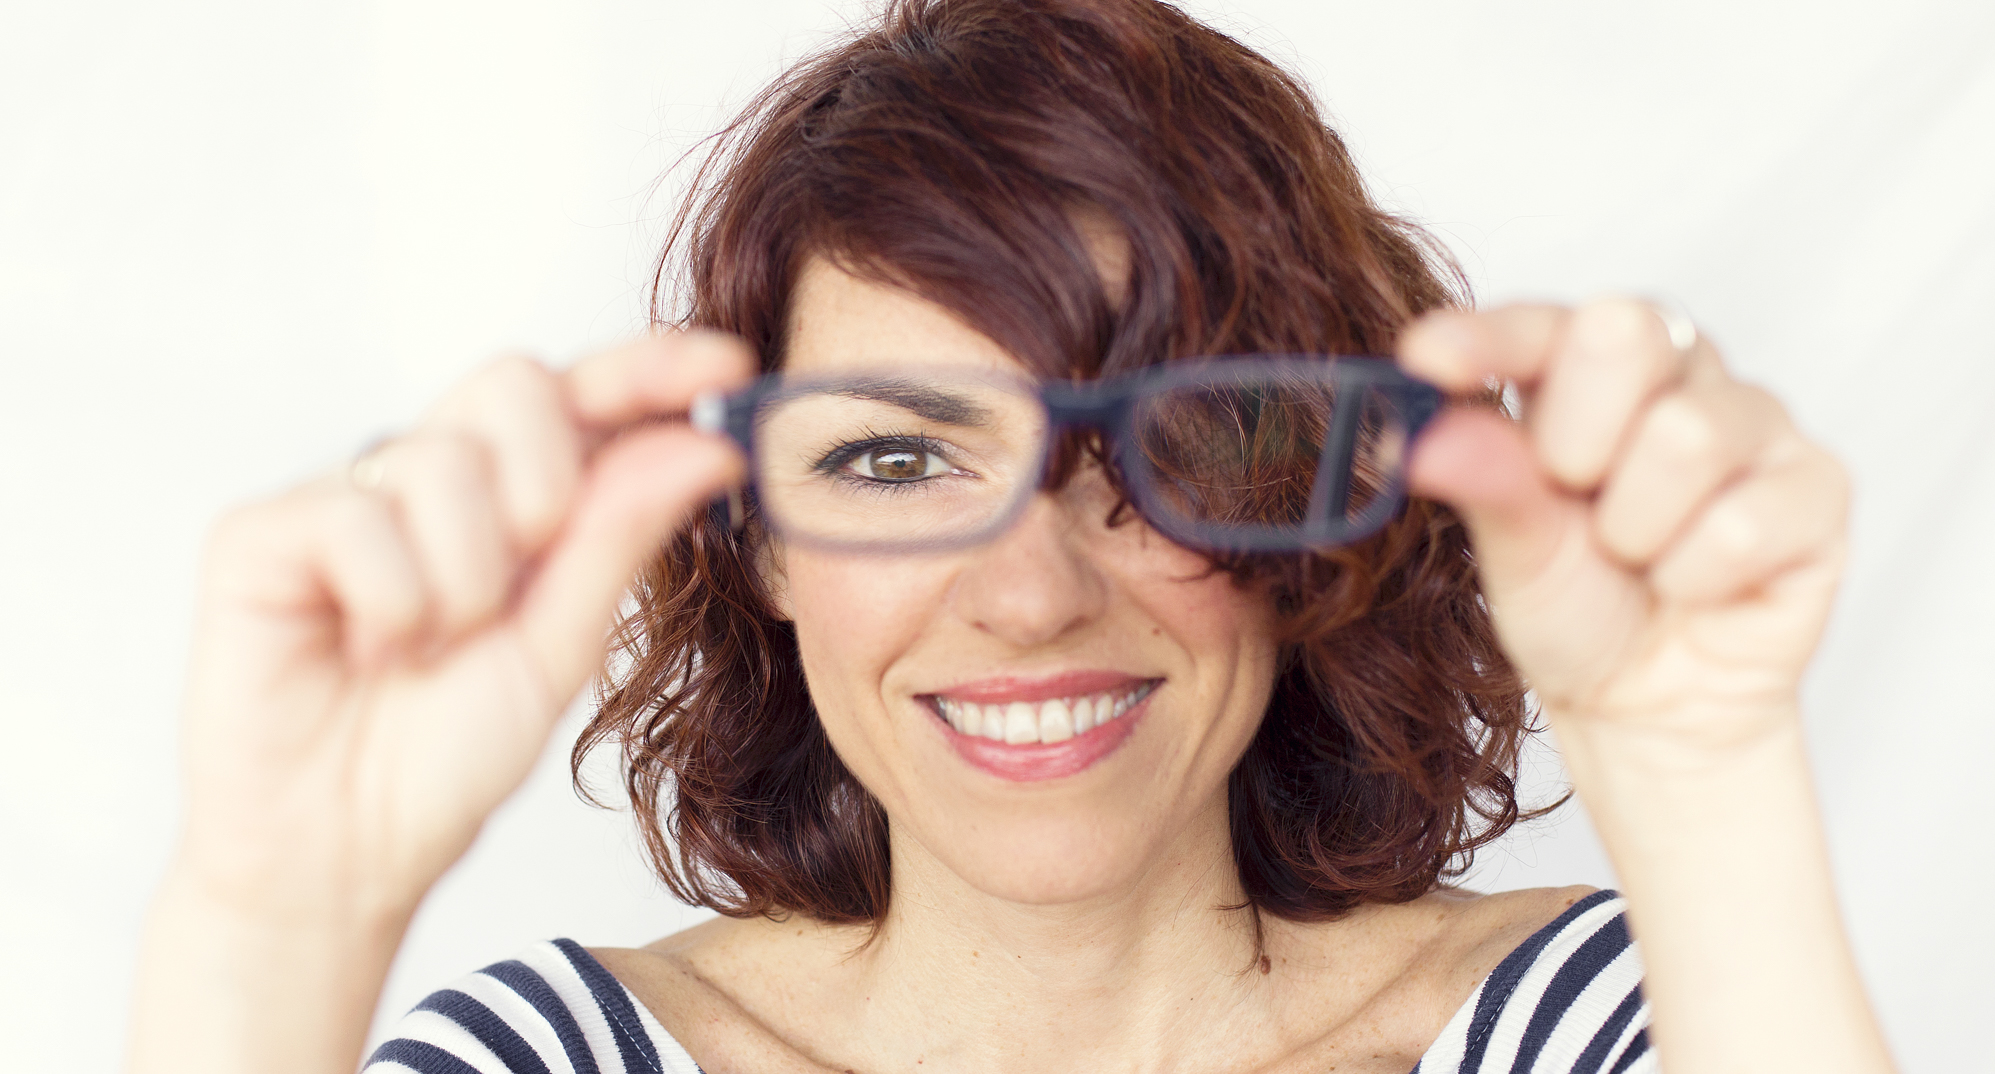 Woman holding glasses in front of her face